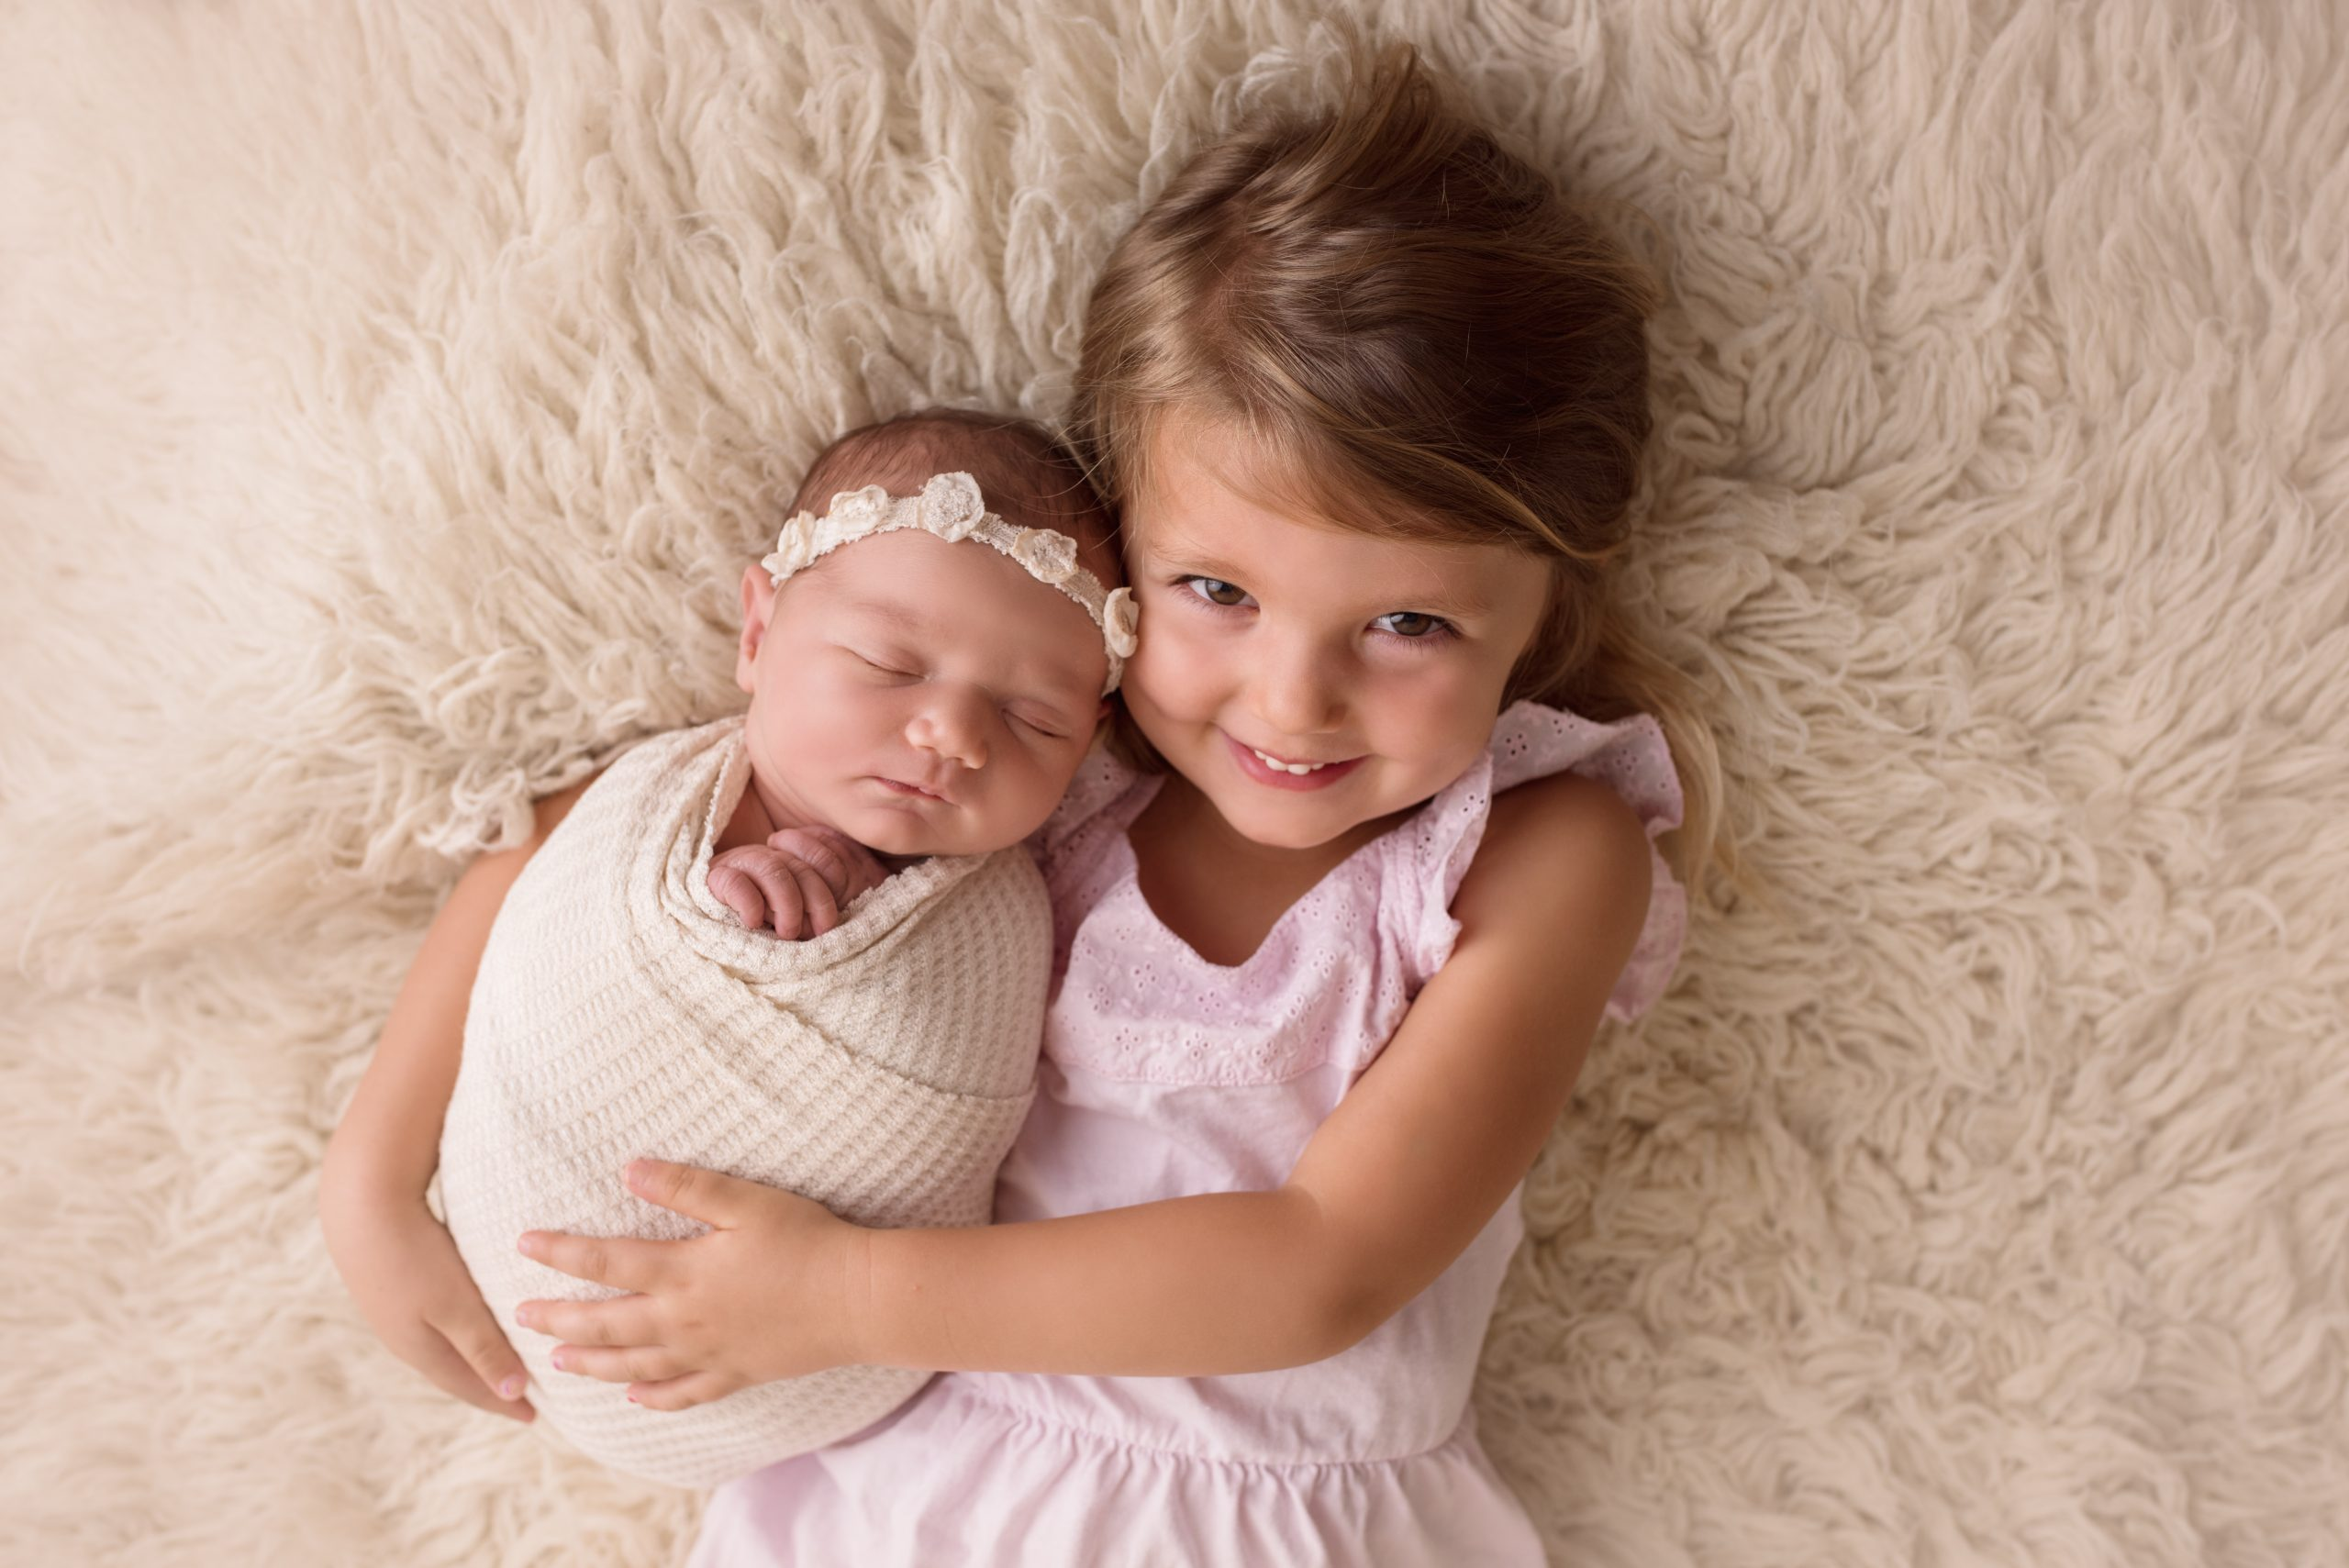 Newborn posed with big sister sibling poses on flokati rug